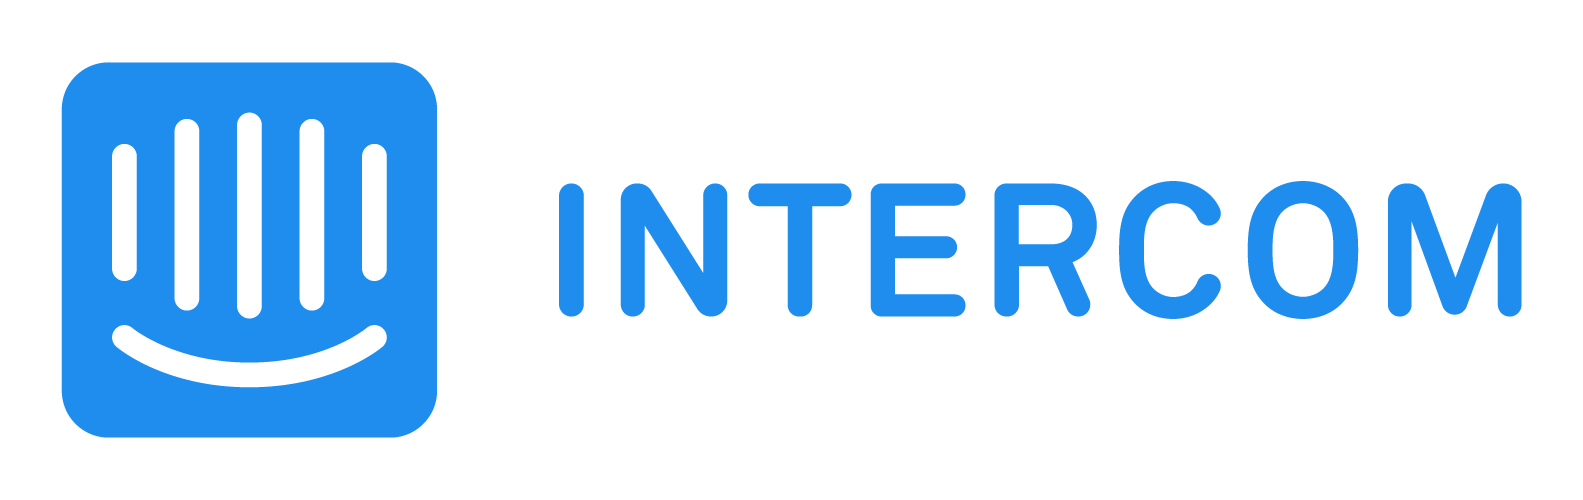 intercom-logo-10eac0c1101952f5d3867ee2800b5963d1cb0bdae6196ca33d0996975d968e59.png